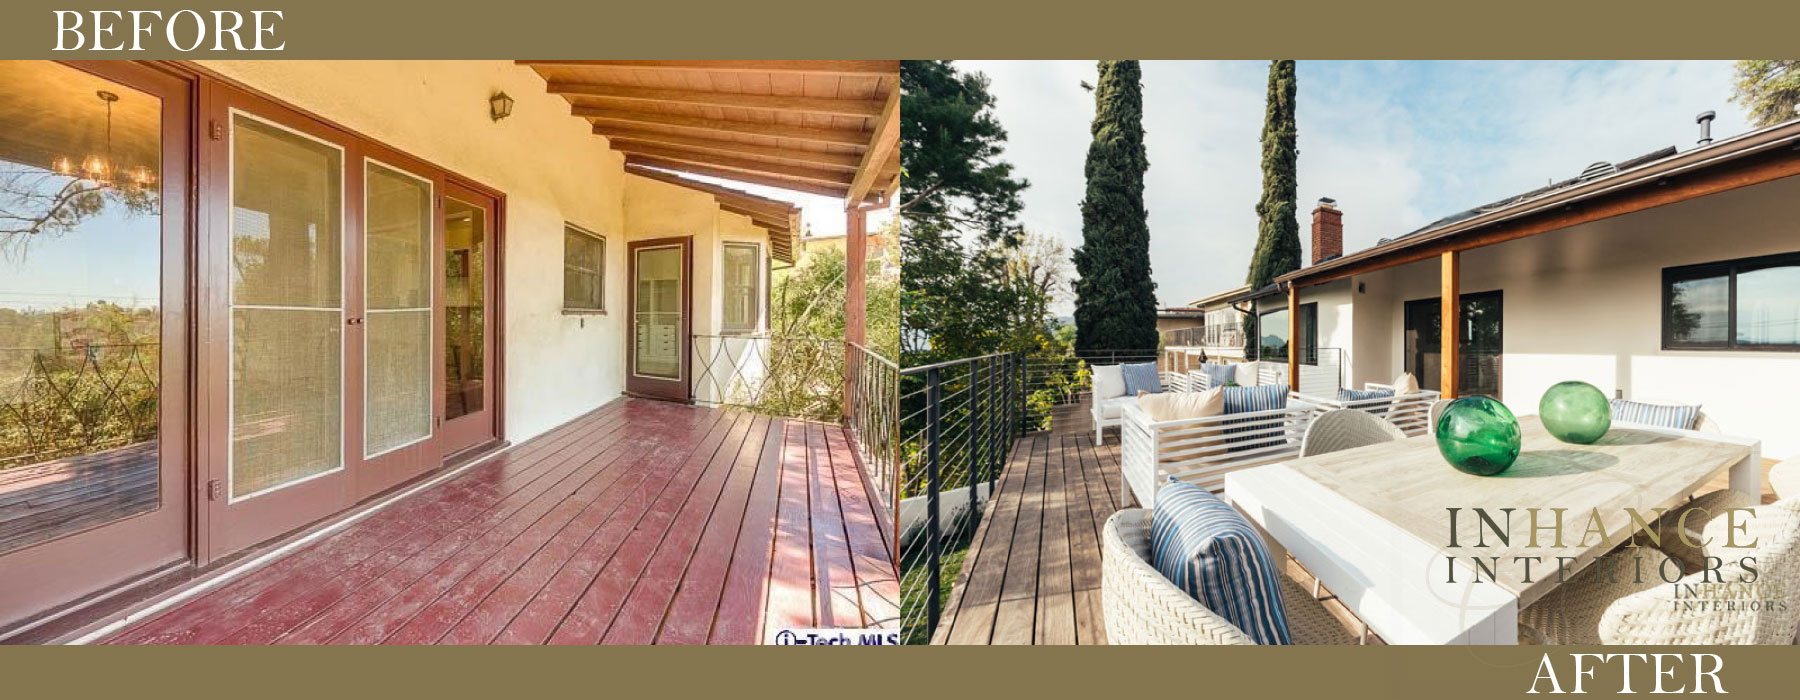 Sequoia_Before-and-After_Back-Porch.jpg